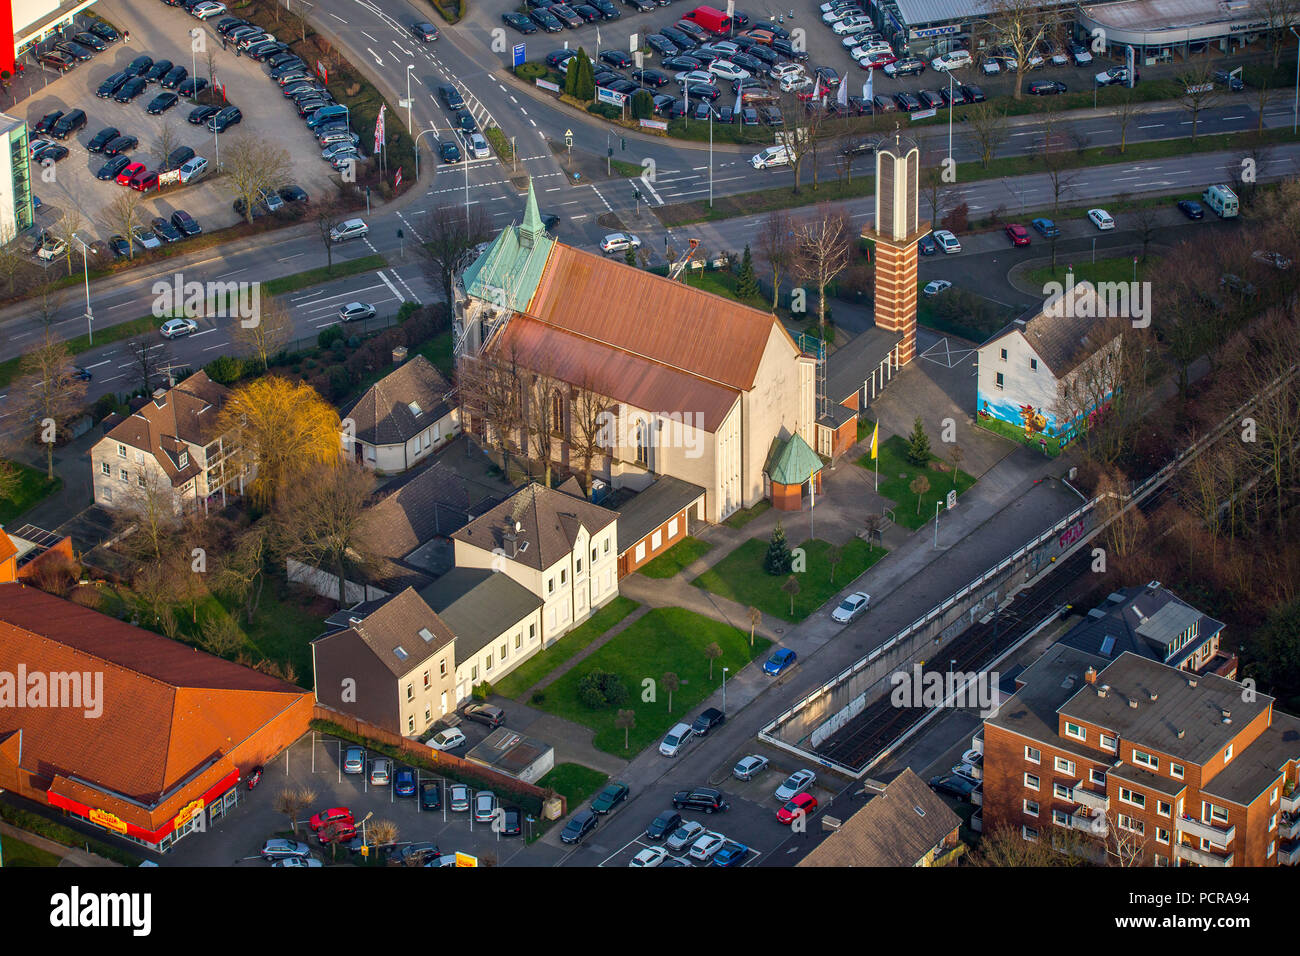 Renovation with a new copper roof for the St.Joseph Church in Heißen, next to the German Scout Association St.Georg, Mülheim an der Ruhr, Ruhr area, North Rhine-Westphalia, Germany - Stock Image